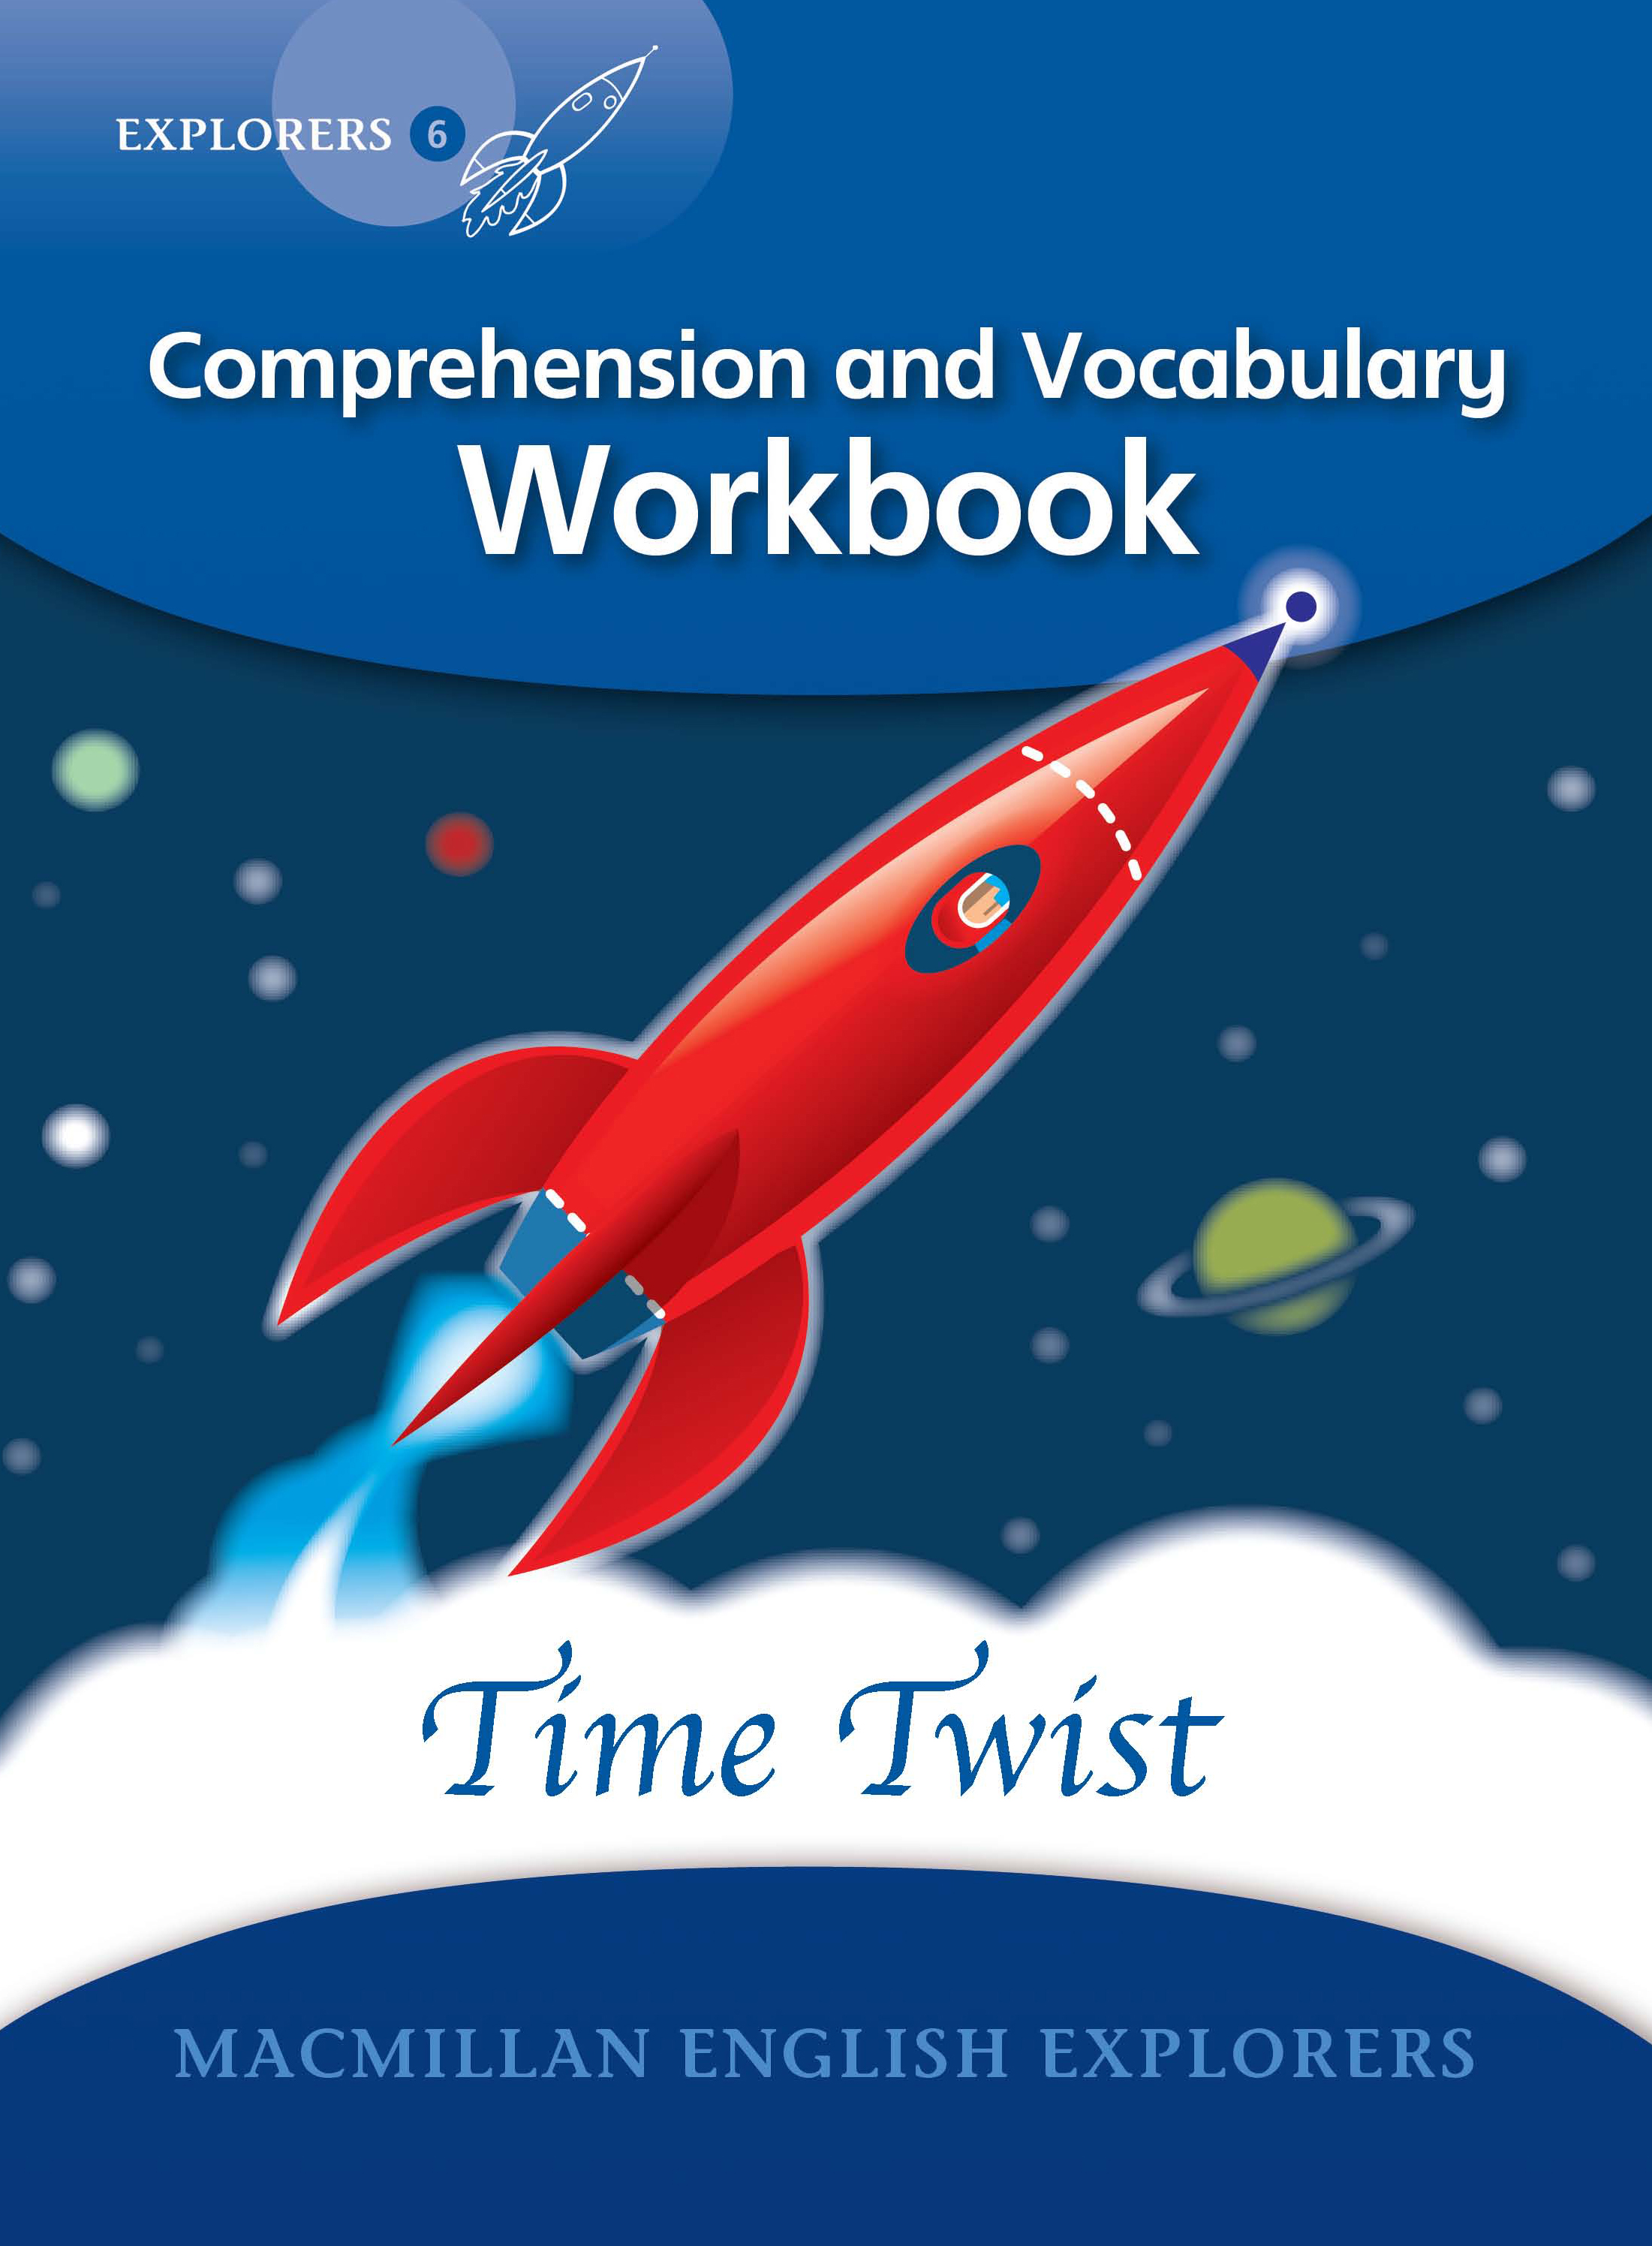 Explorers 6: Time Twist Workbook